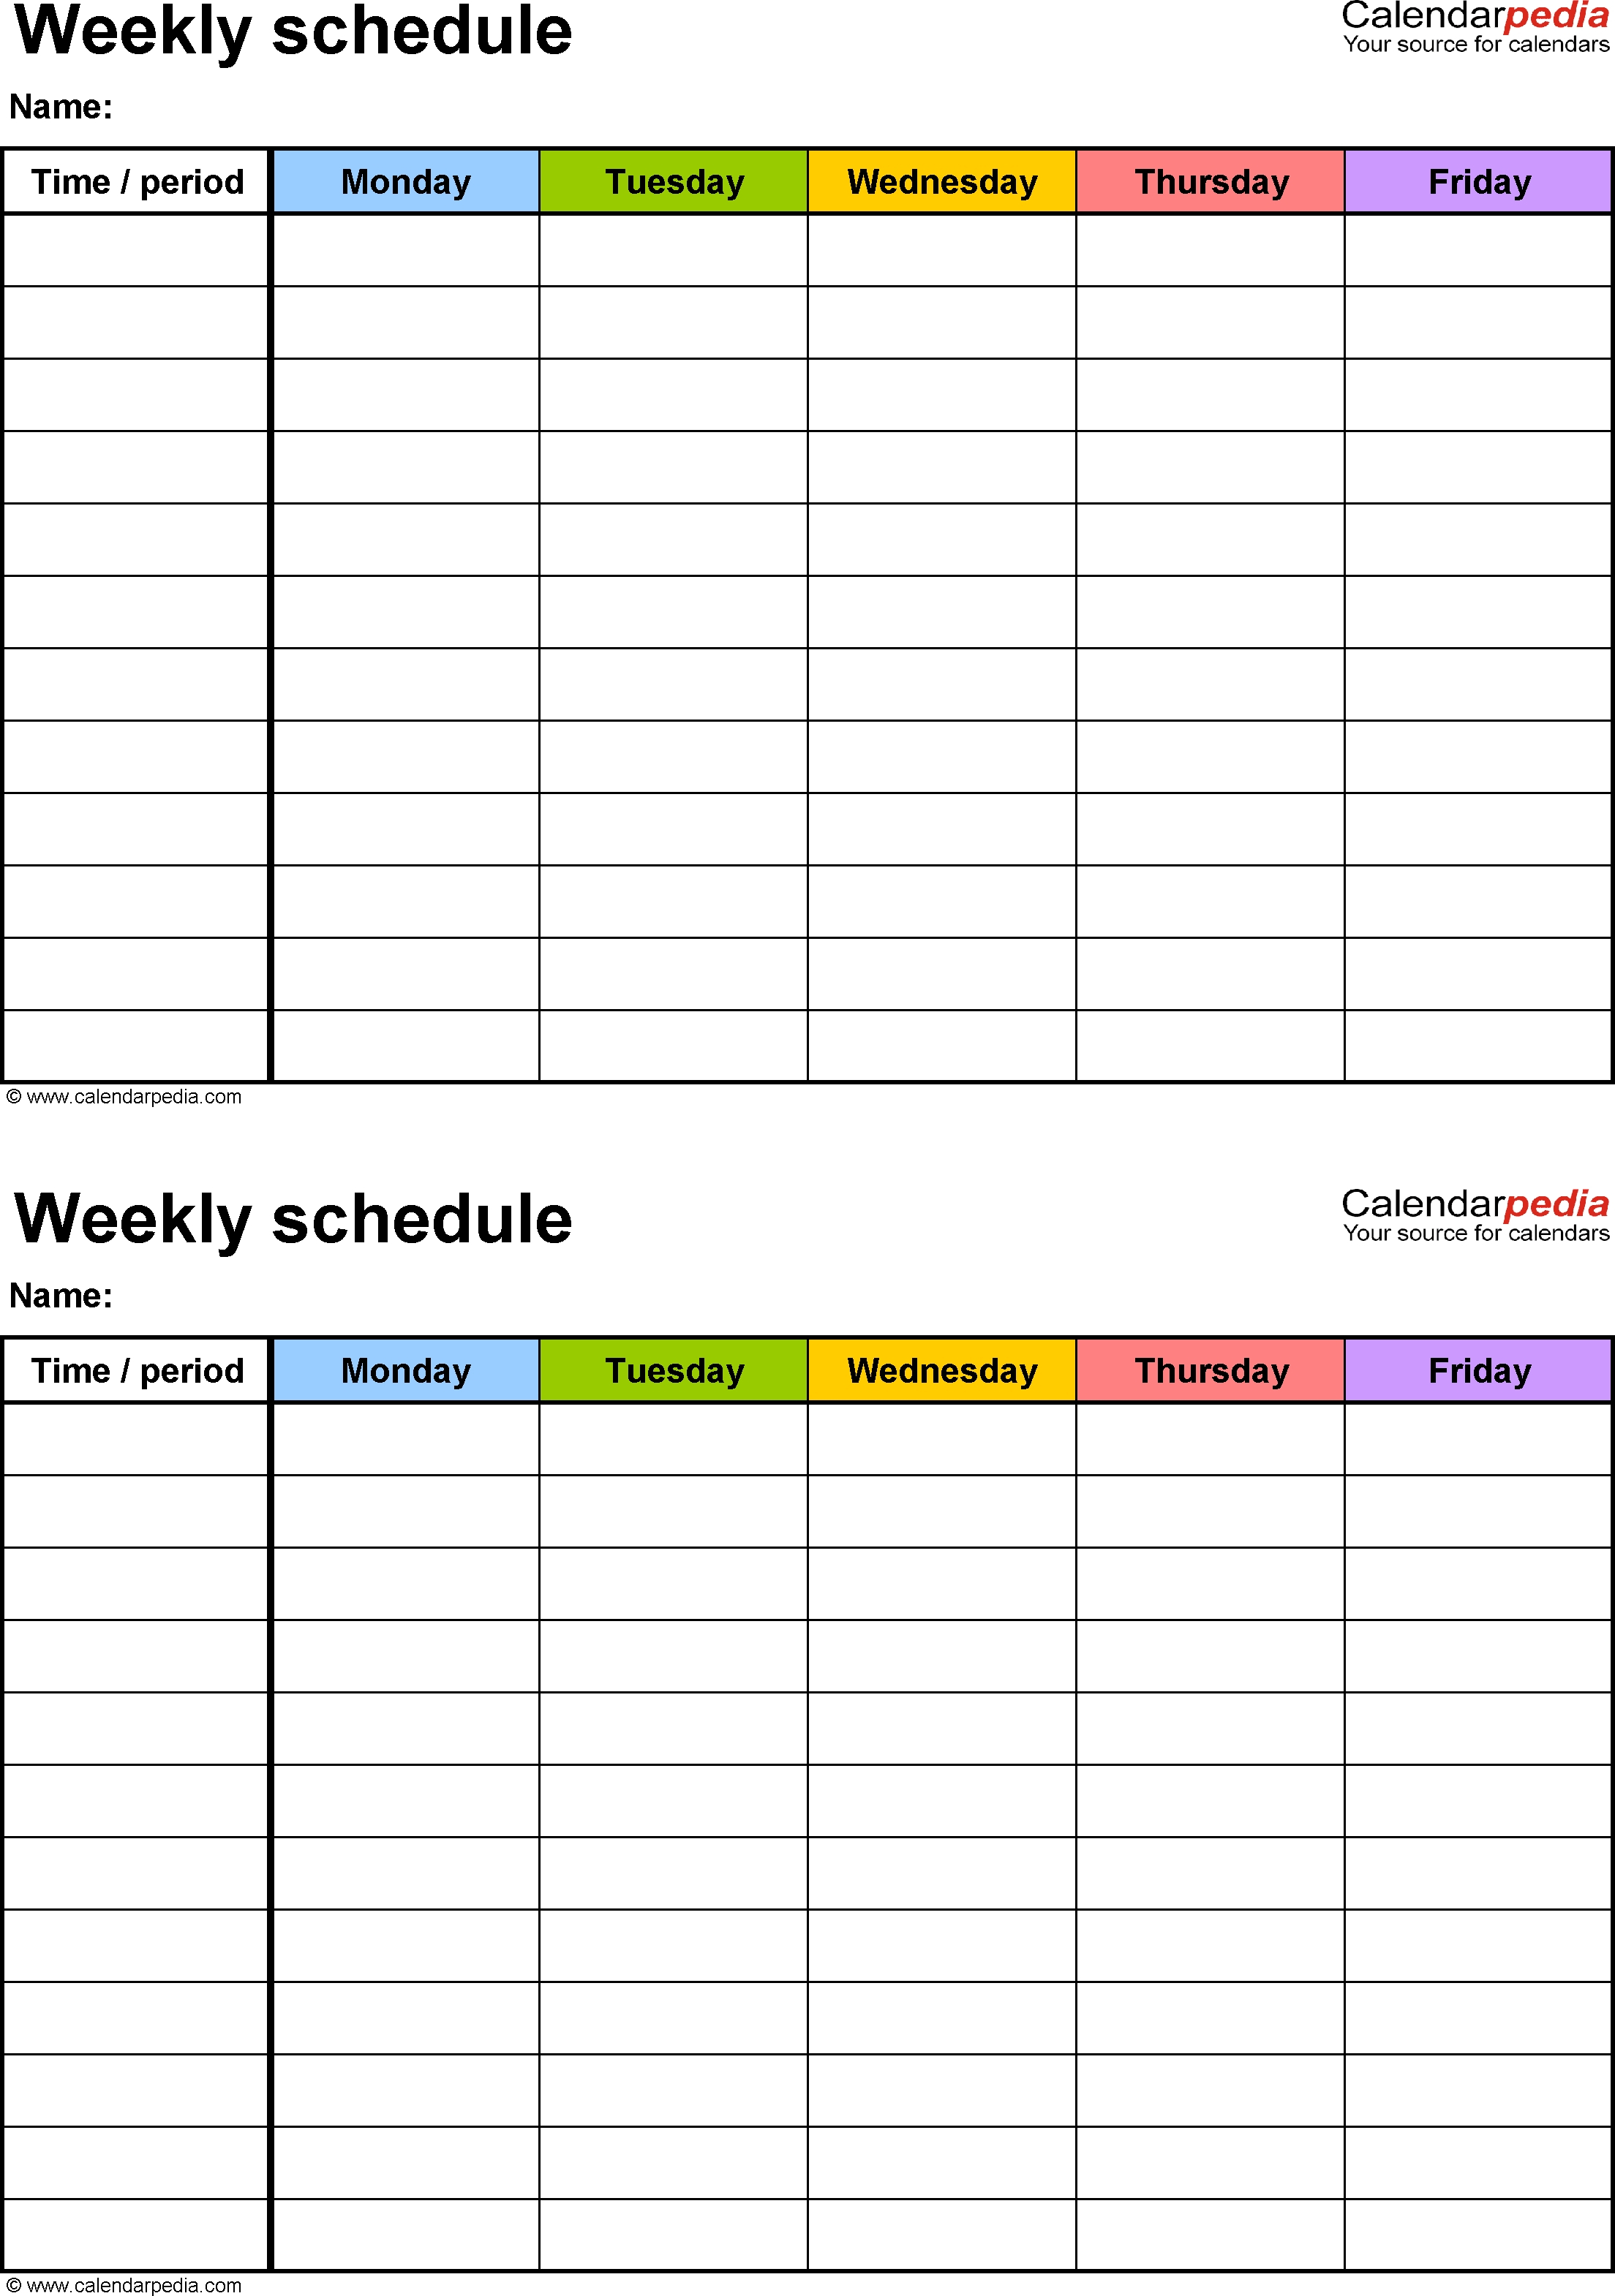 Template Monday To Friday   Calendar Template Printable Monday Through Friday Schedule Template Free